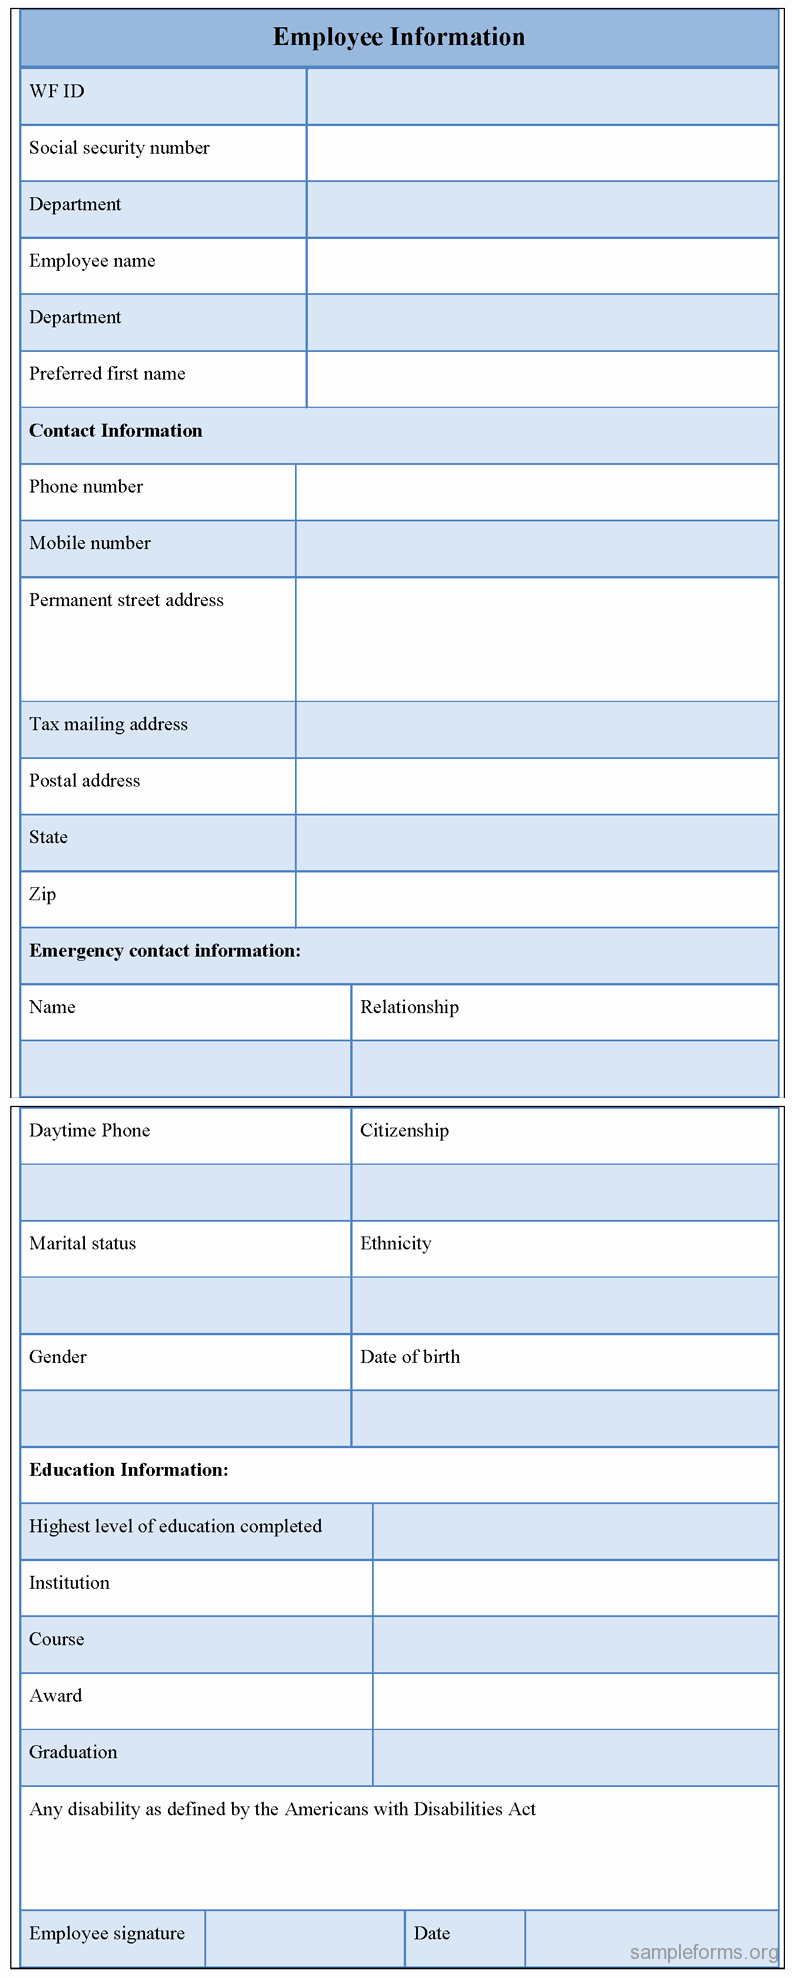 Employee Information forms Templates Best Of Employee Information form Sample forms